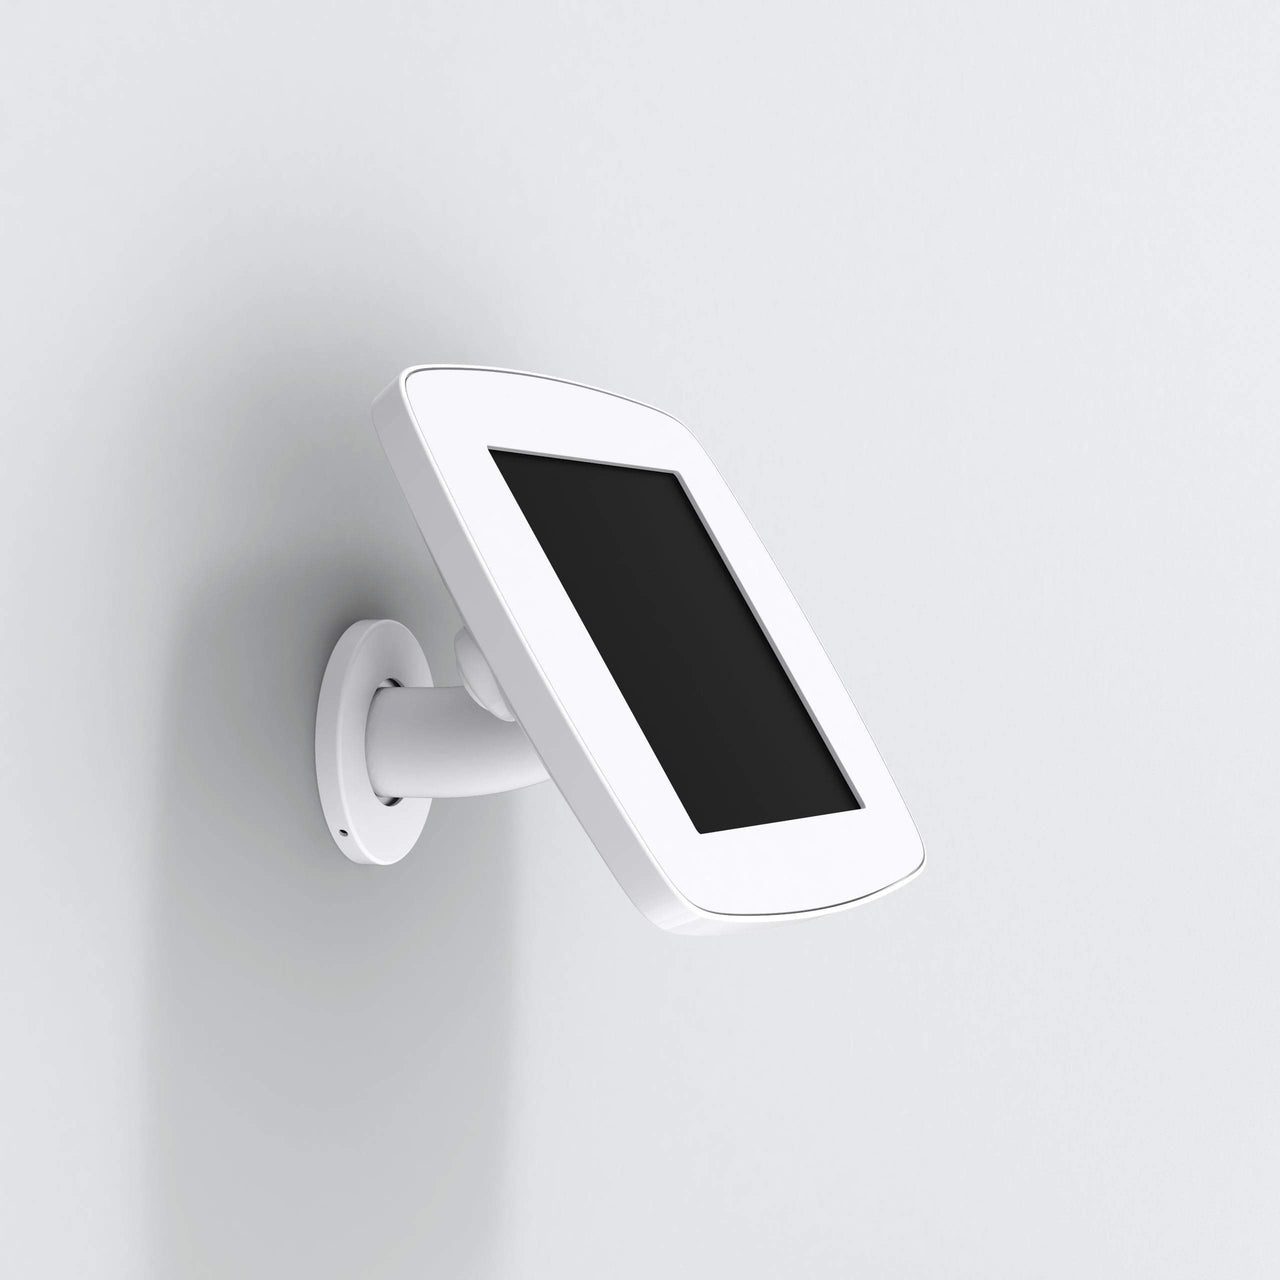 Bouncepad Wallount - A secure tablet & iPad wall mount in white.